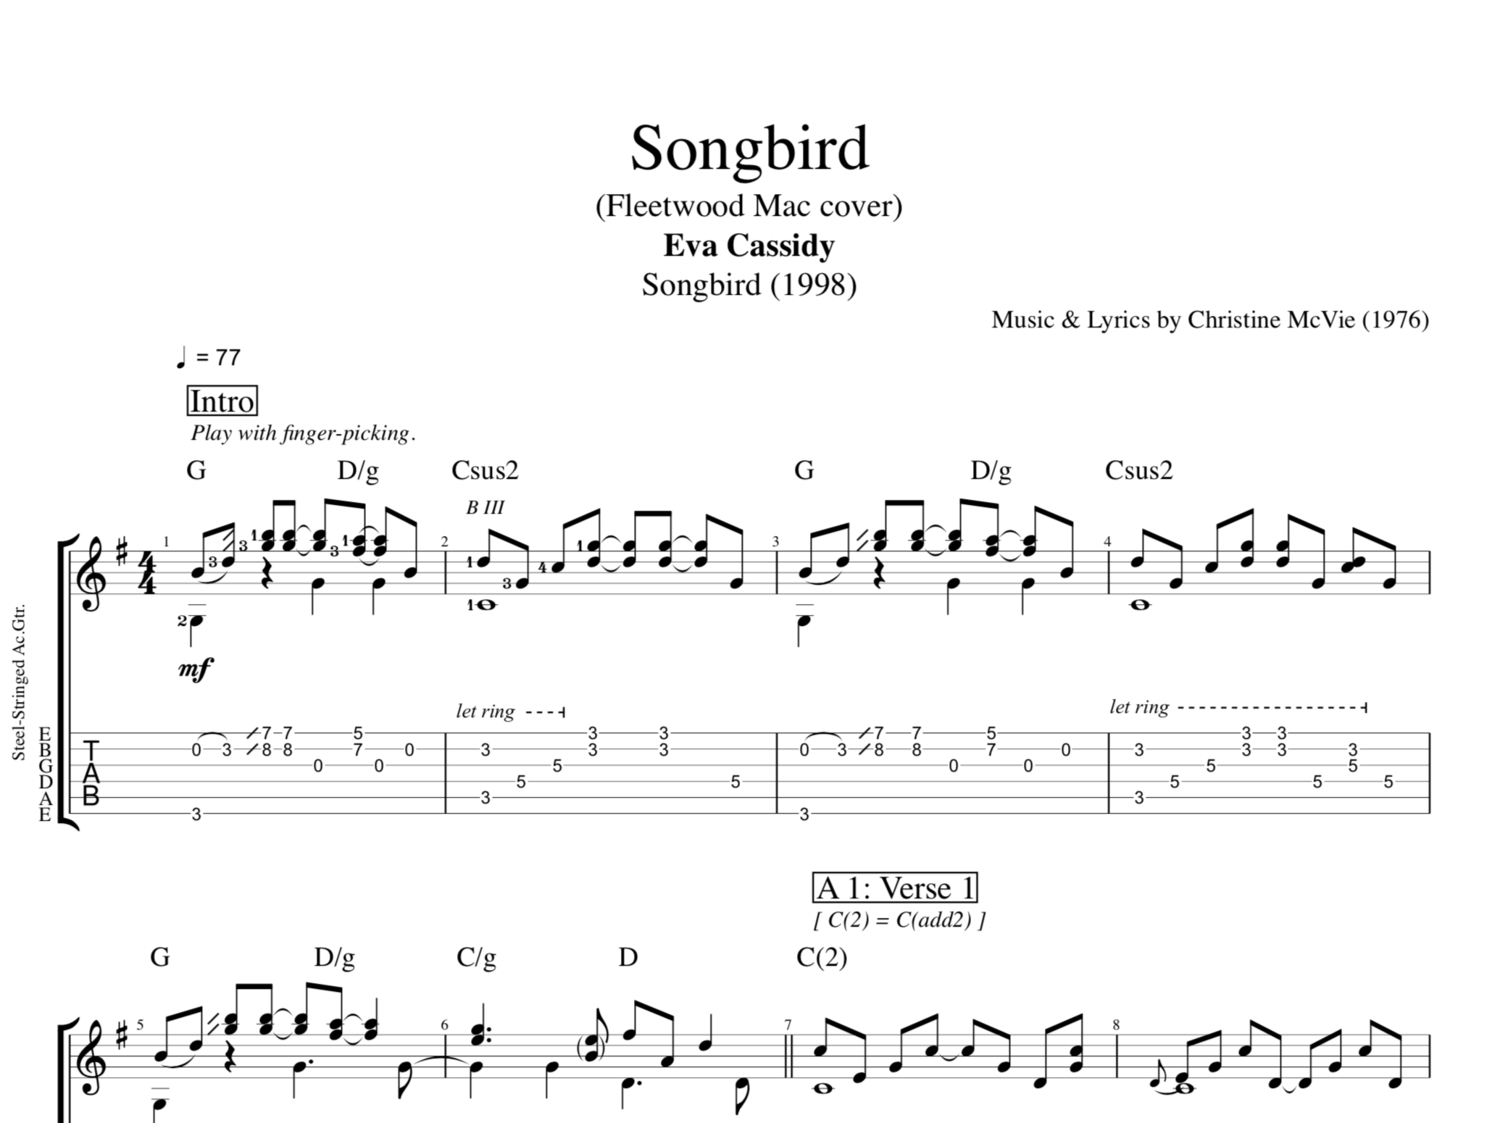 Songbird By Eva Cassidy Guitars Bass Vocals Tabs Chords